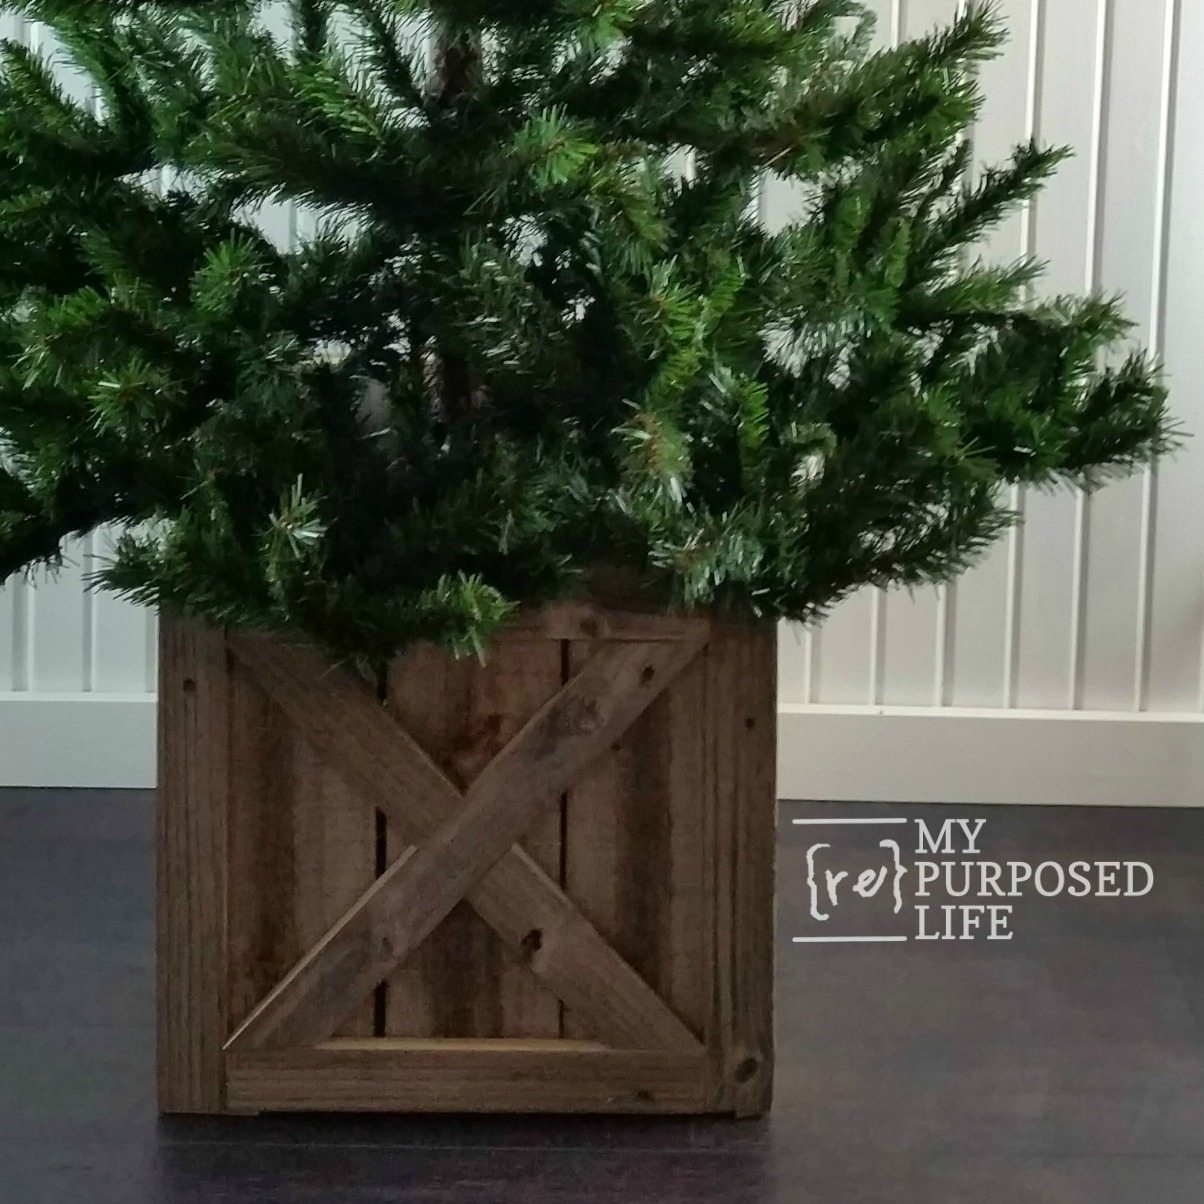 christmas tree stand box folds flat for storage my repurposed life - Christmas Tree Stand Amazon